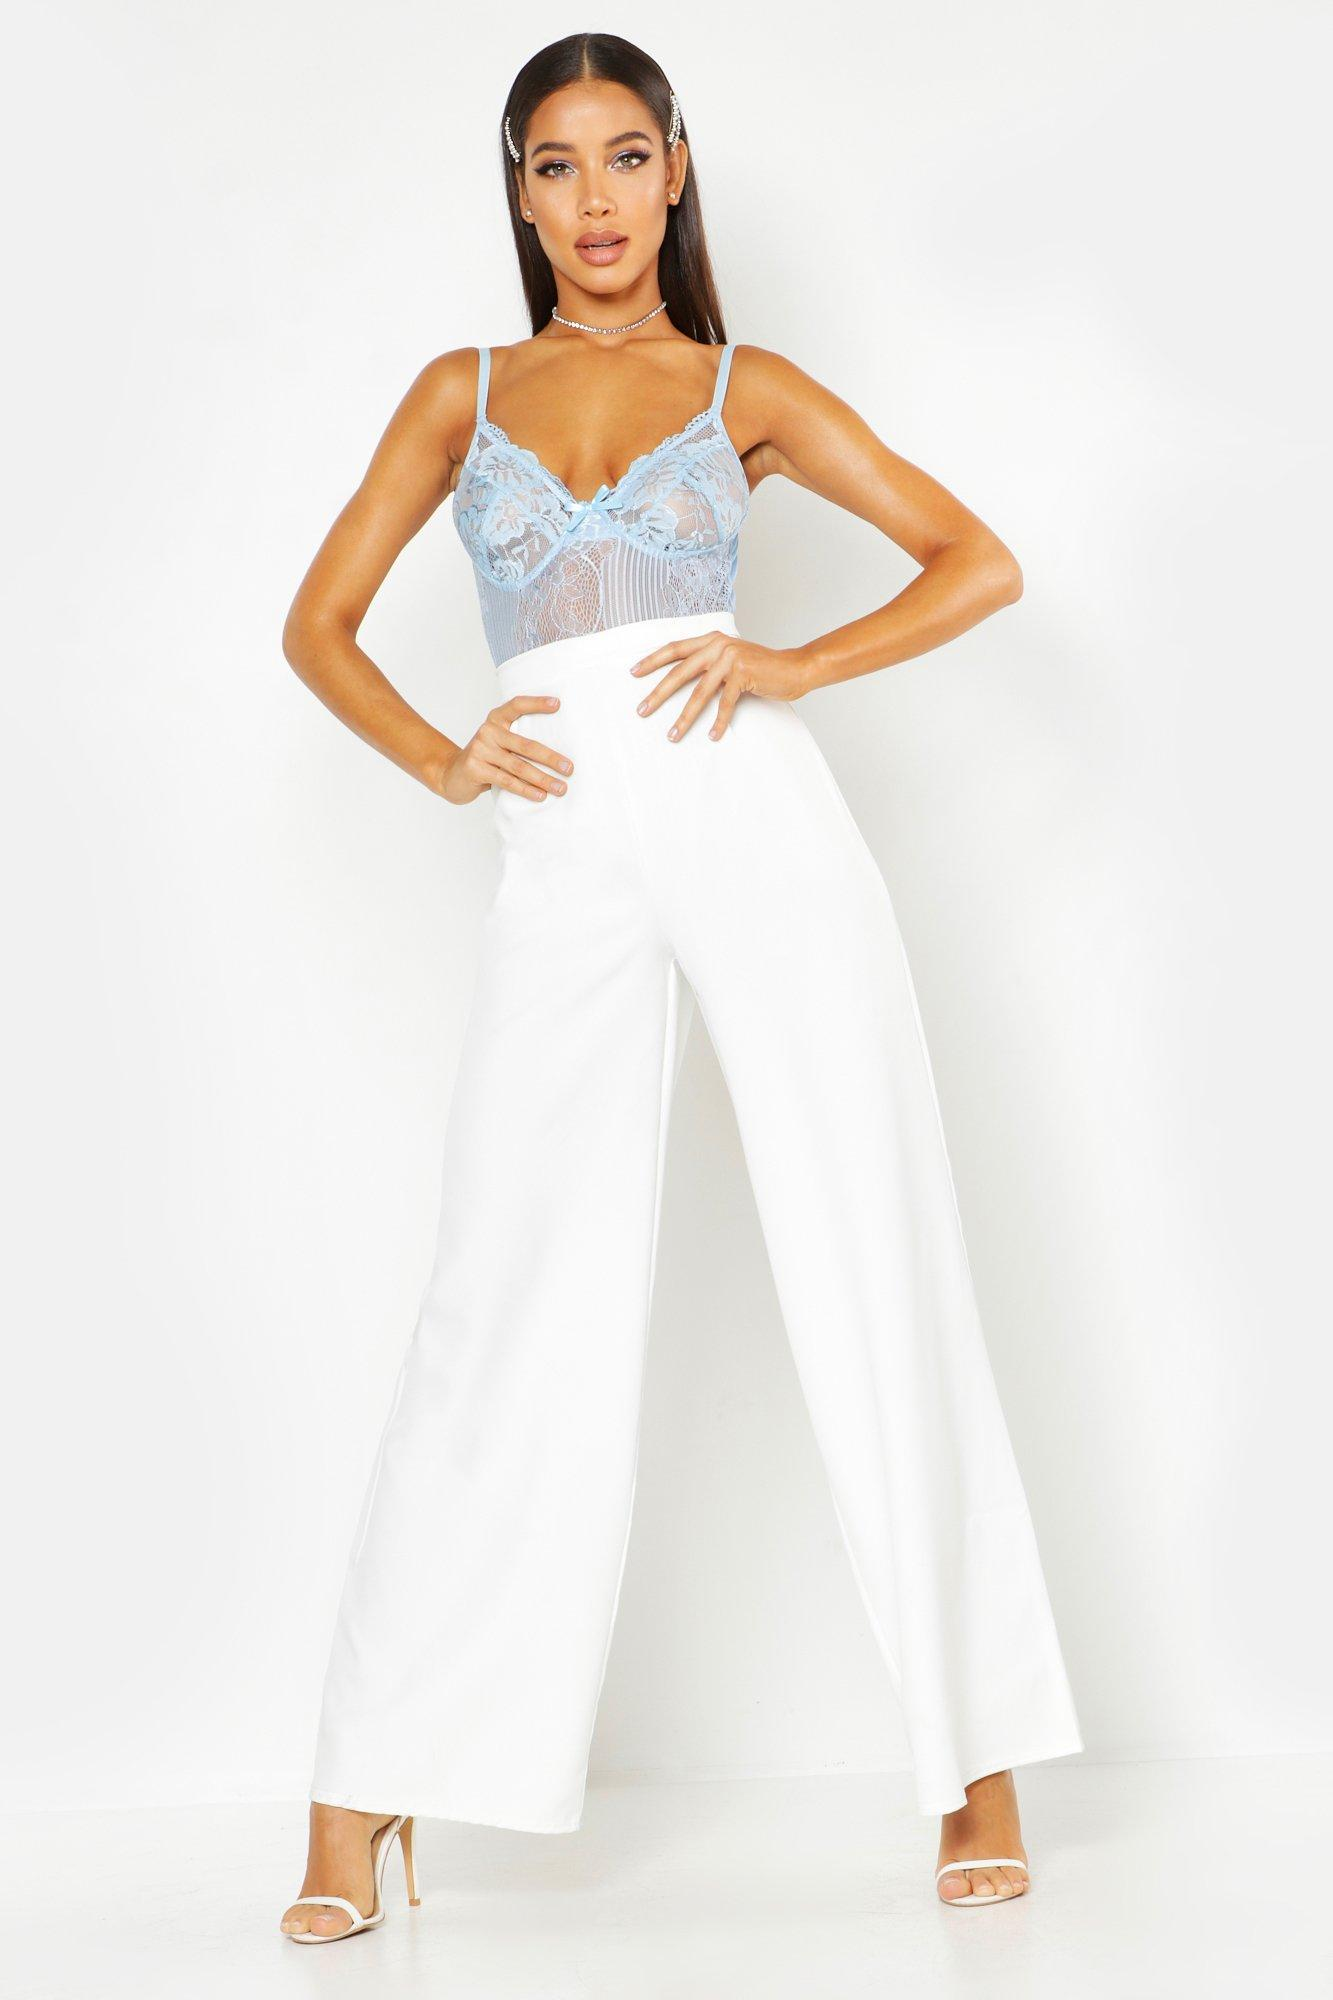 1920s Style Women's Pants, Trousers, Knickers, Tuxedo Womens High Waisted Woven Wide Leg pants - white - 16 $25.00 AT vintagedancer.com